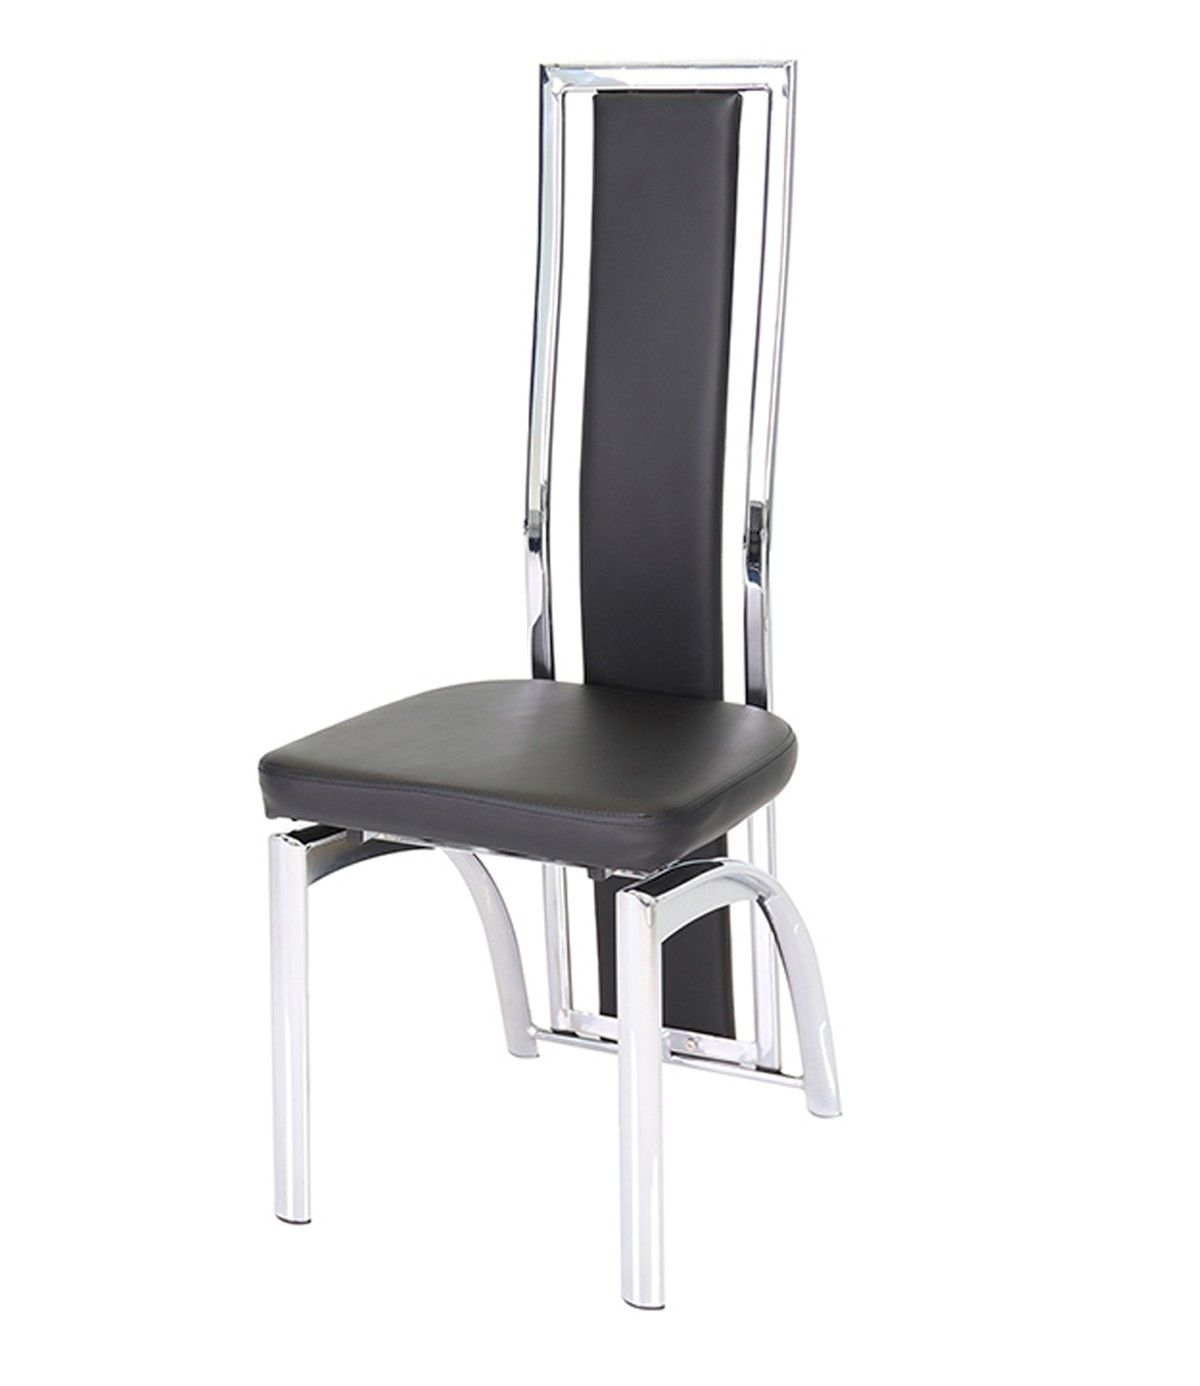 Mayfair High Back Faux Leather And Chrome Black Dining Chair Mayfair High Back Faux Leather And Chrome Black Dining Chairs Dining Chairs Diy Modern Furniture